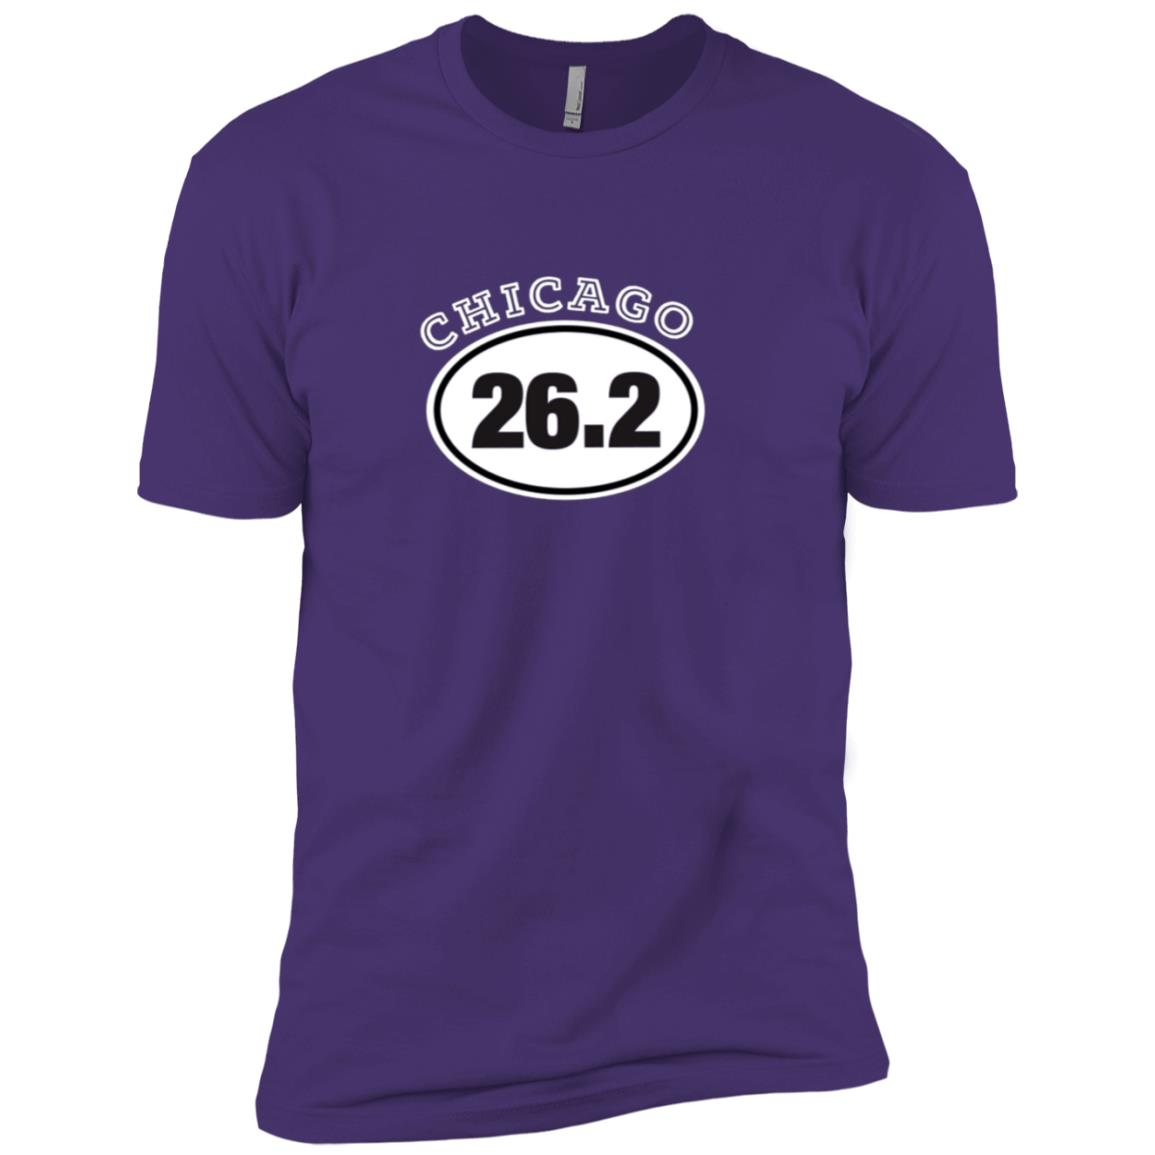 Chicago 26.2 Running Men Short Sleeve T-Shirt